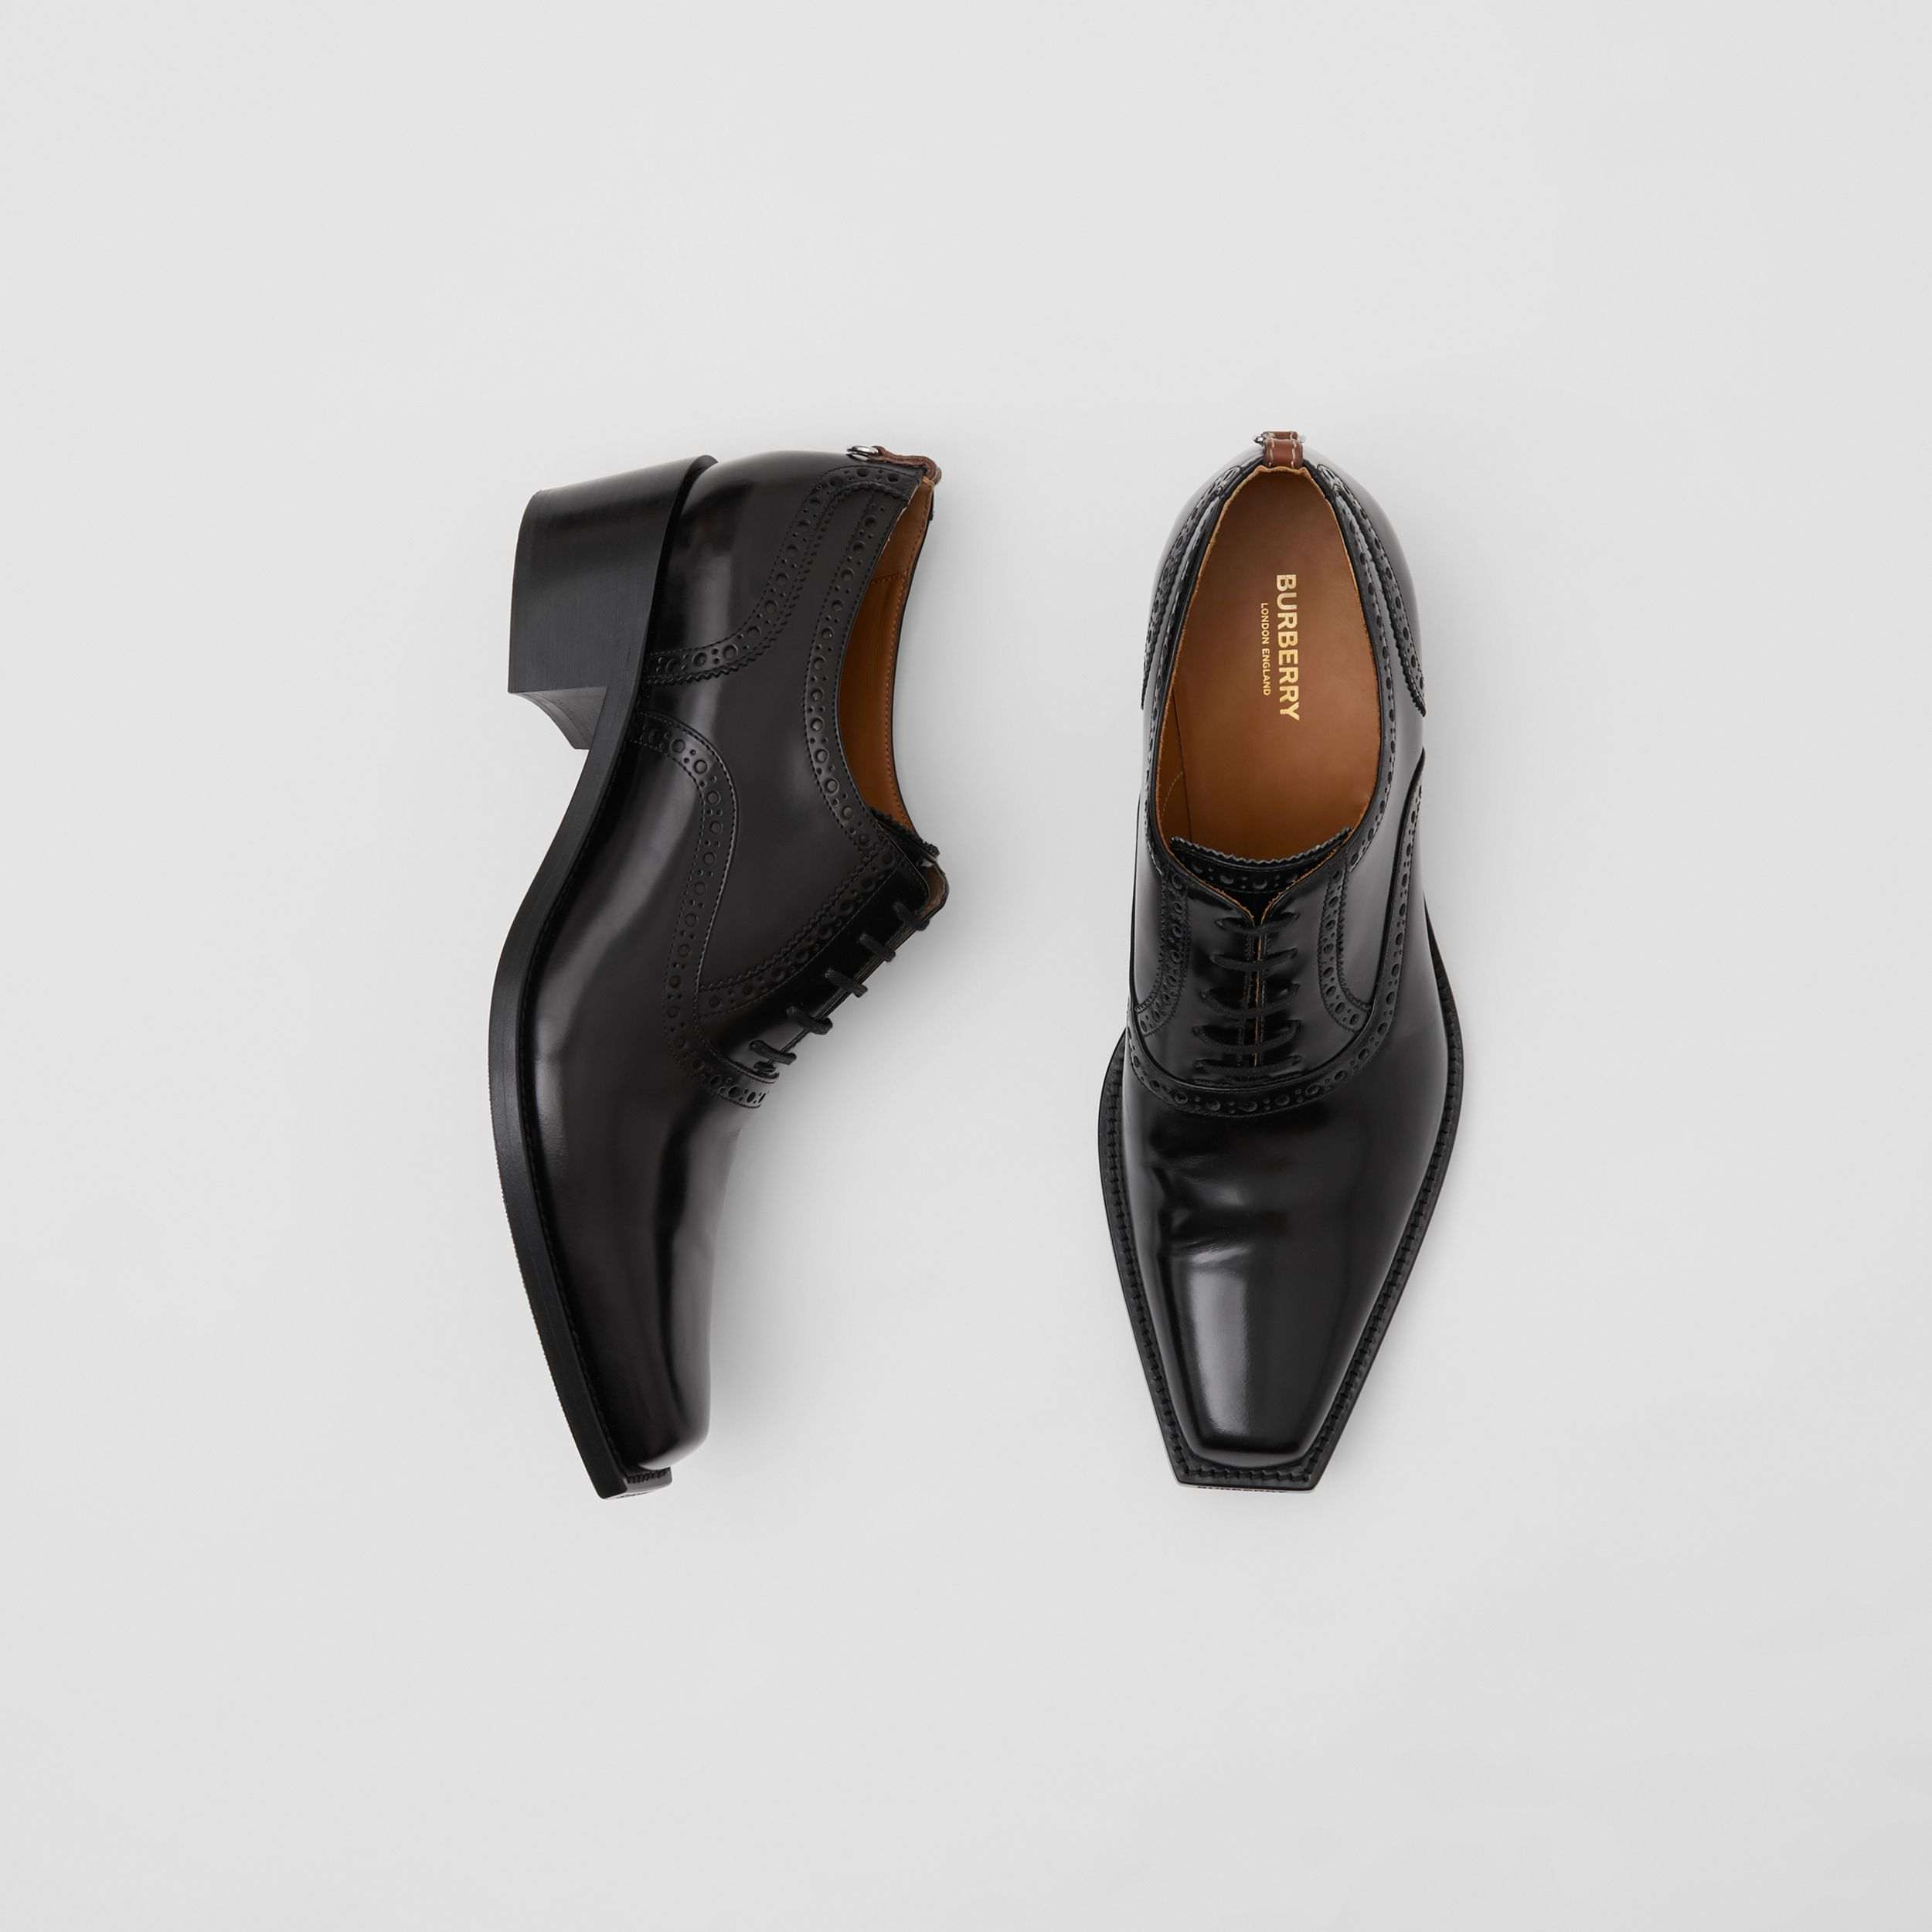 D-ring Detail Leather Heeled Oxford Brogues in Black | Burberry Singapore - 1